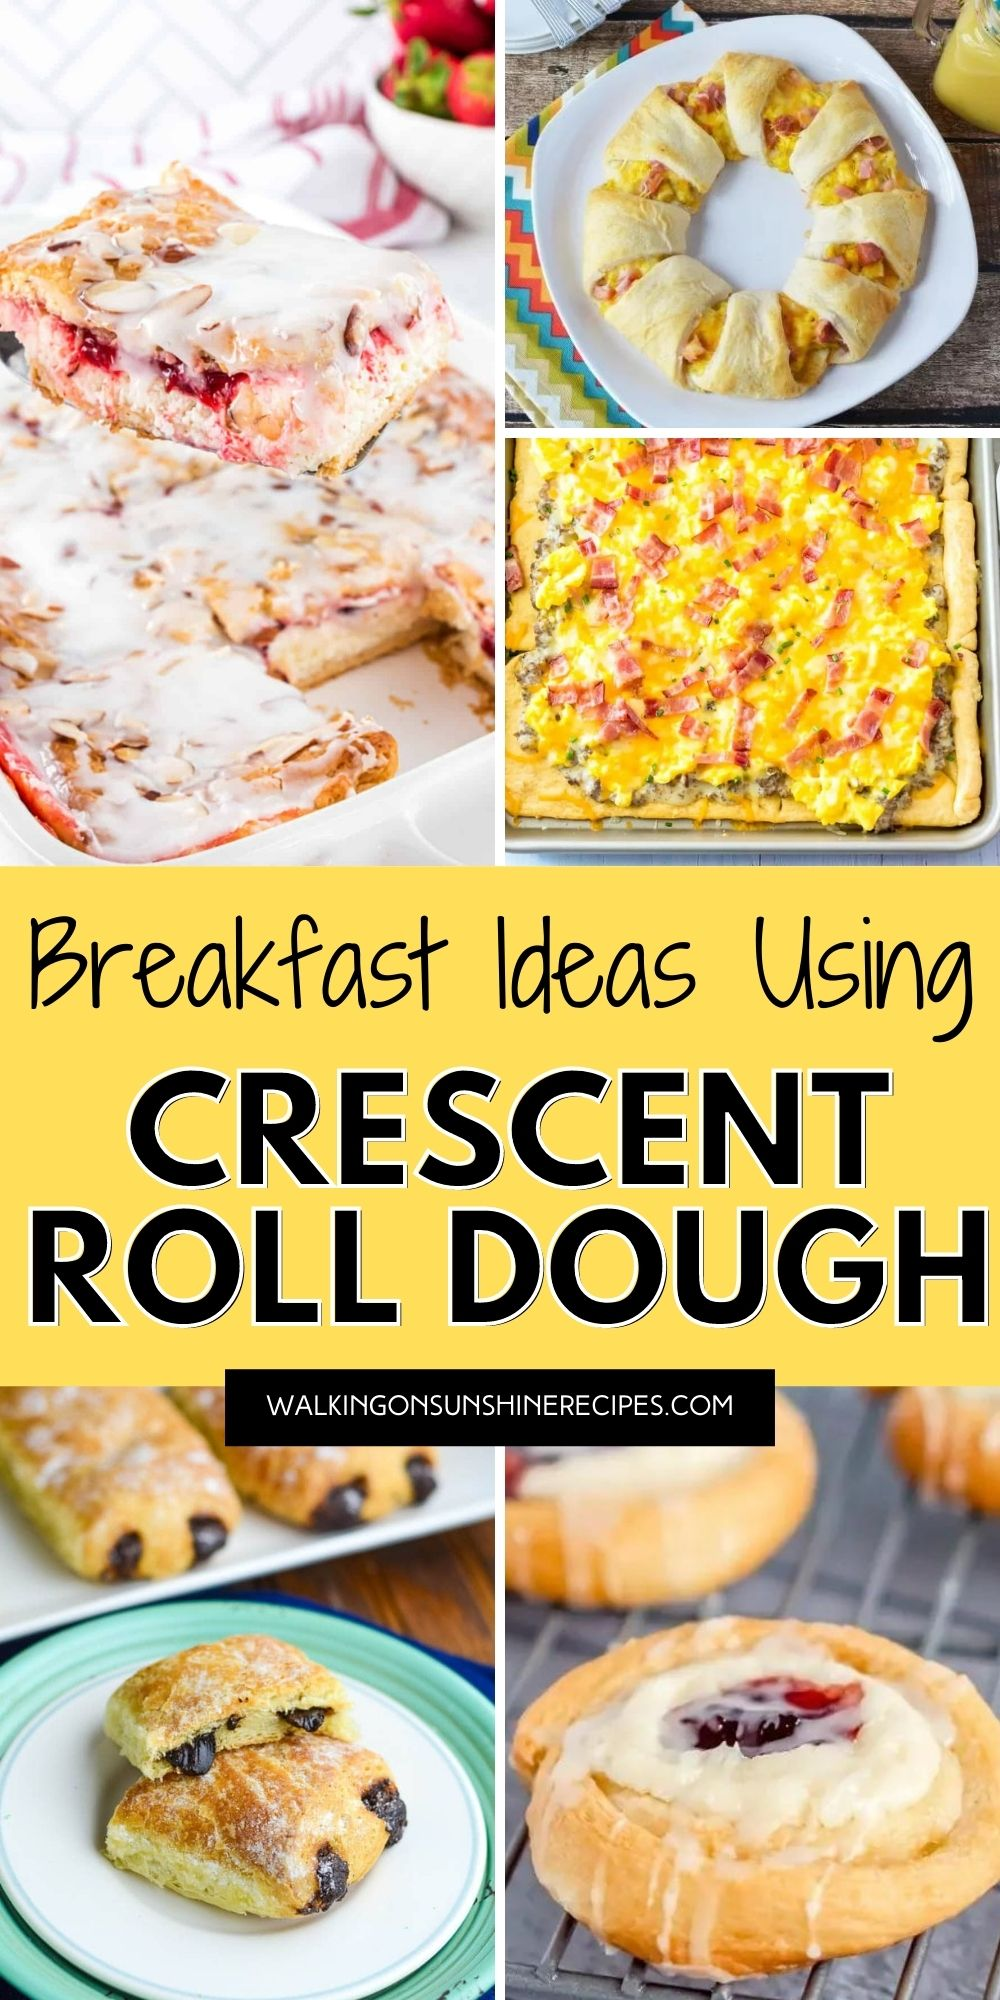 breakfast recipes made using crescent roll dough.